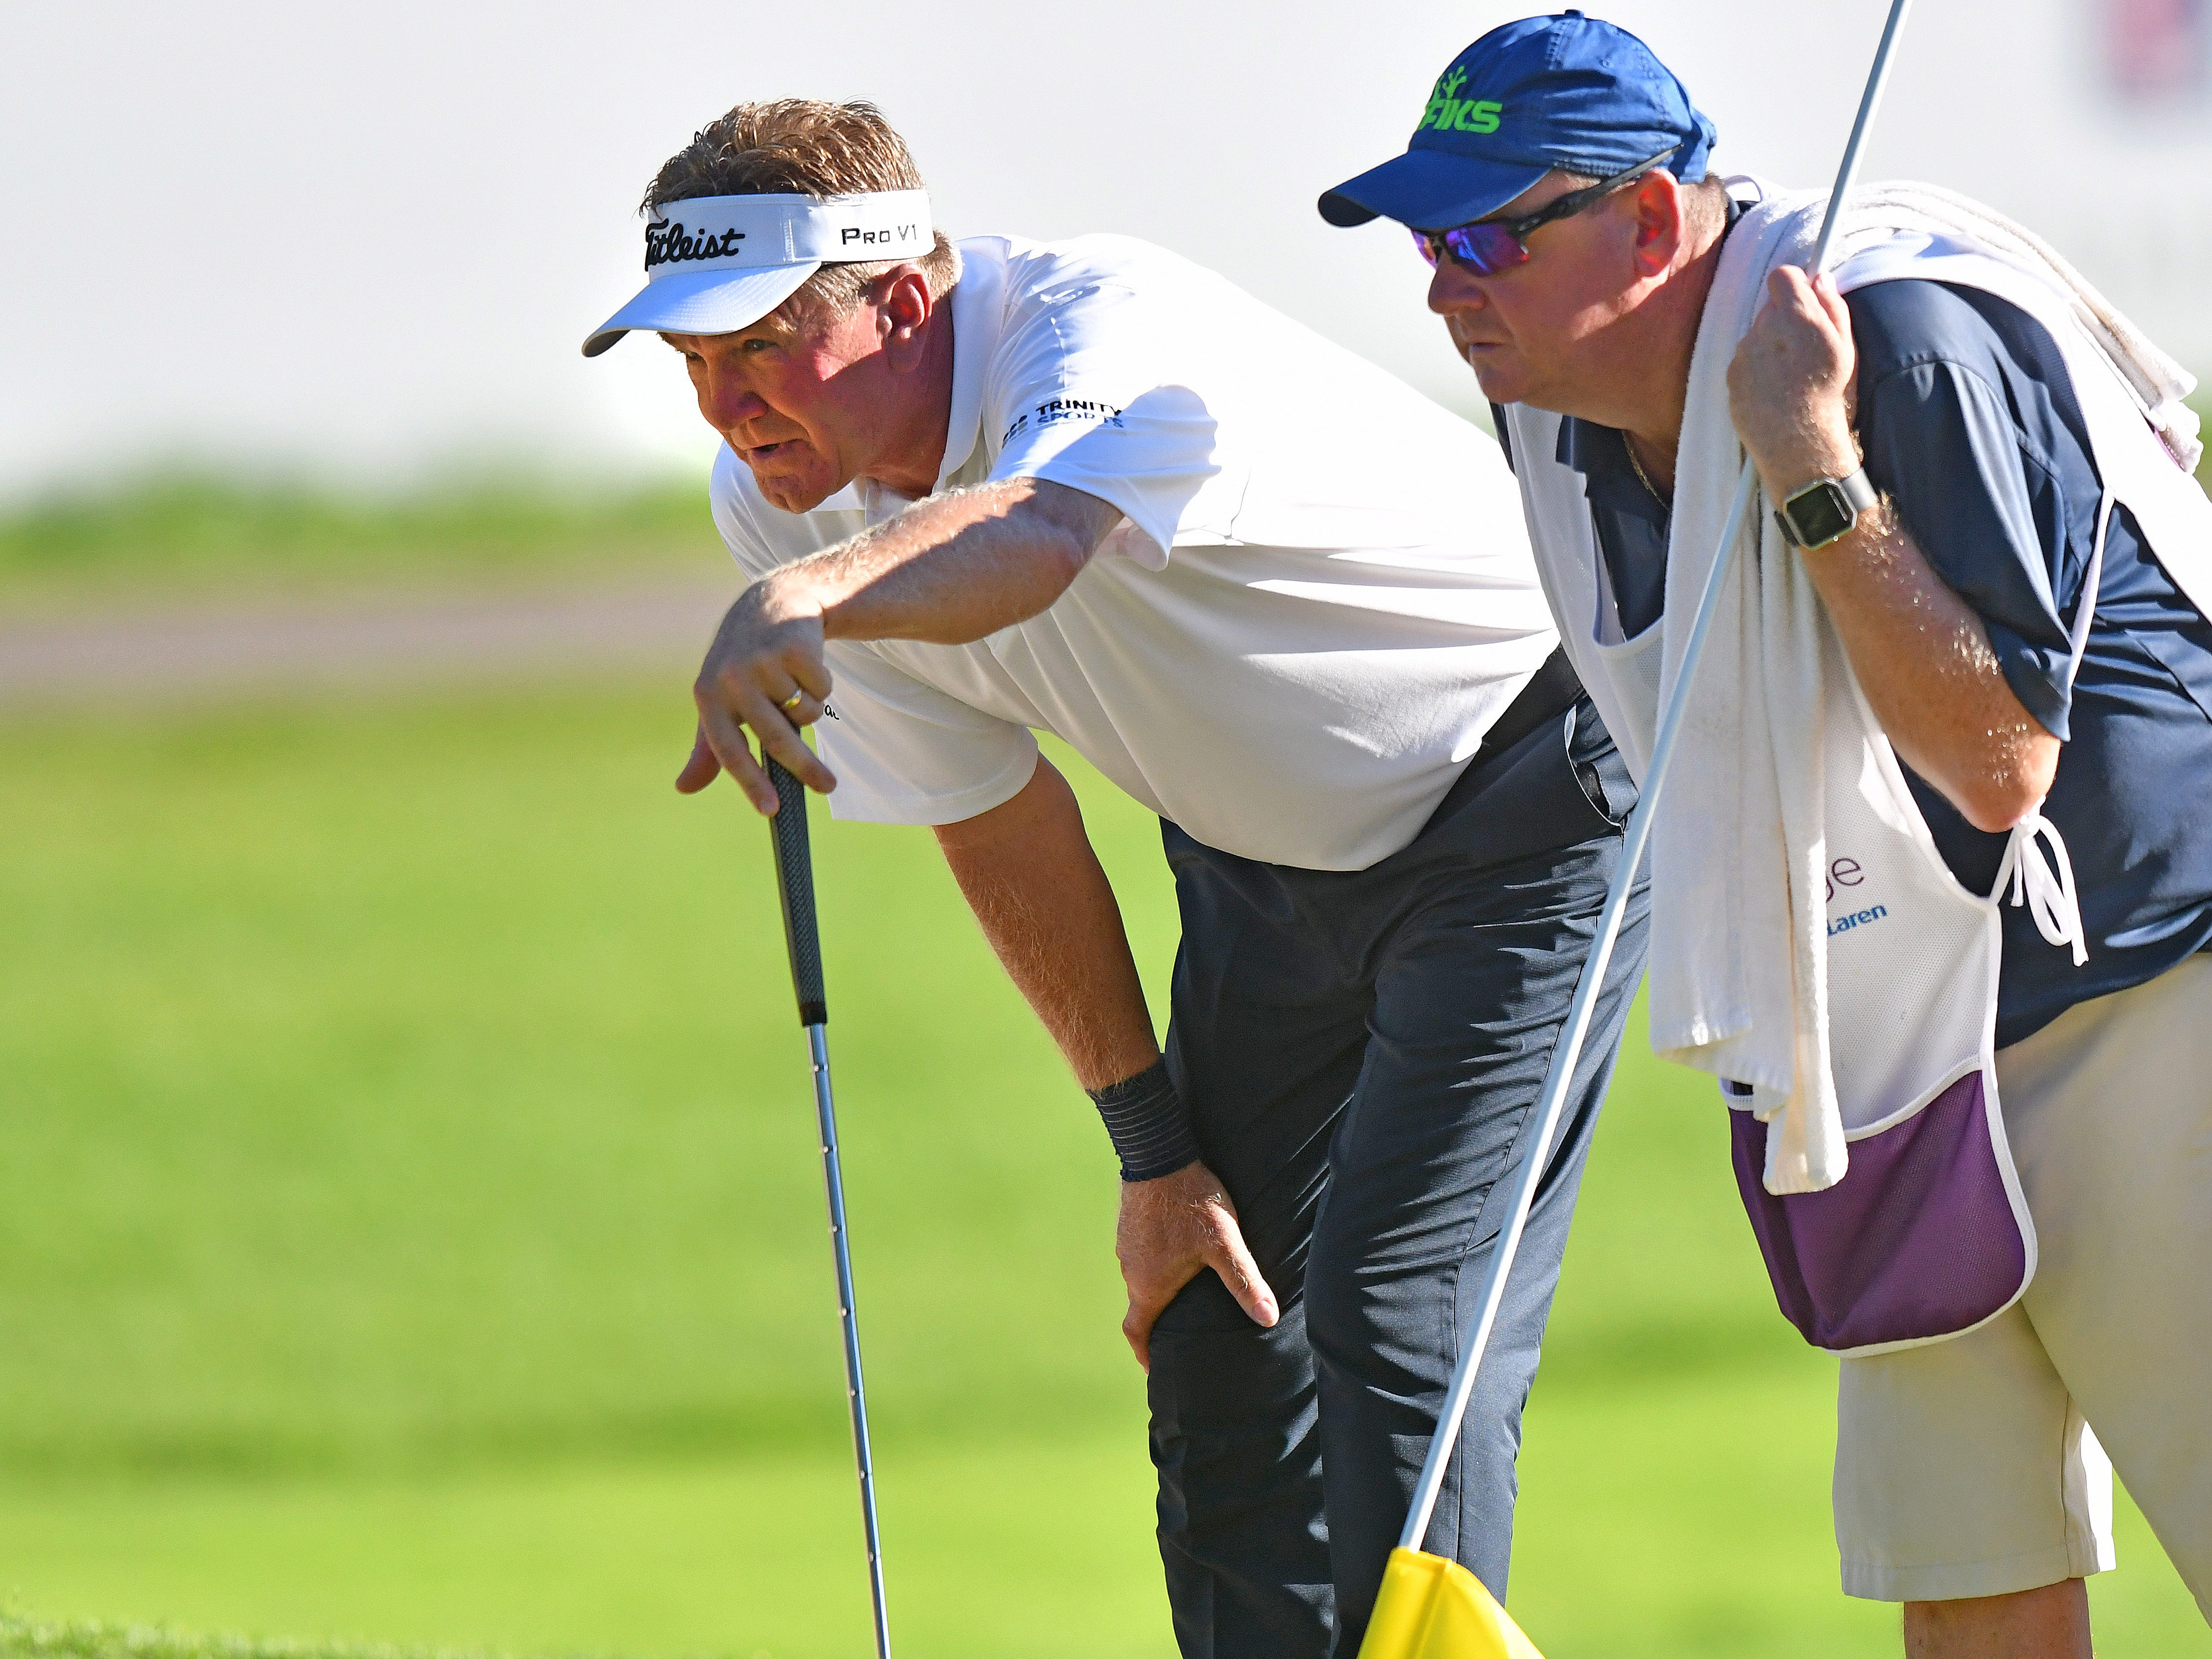 Paul Broadhurst and his caddy look over his putt on the 17th hole.